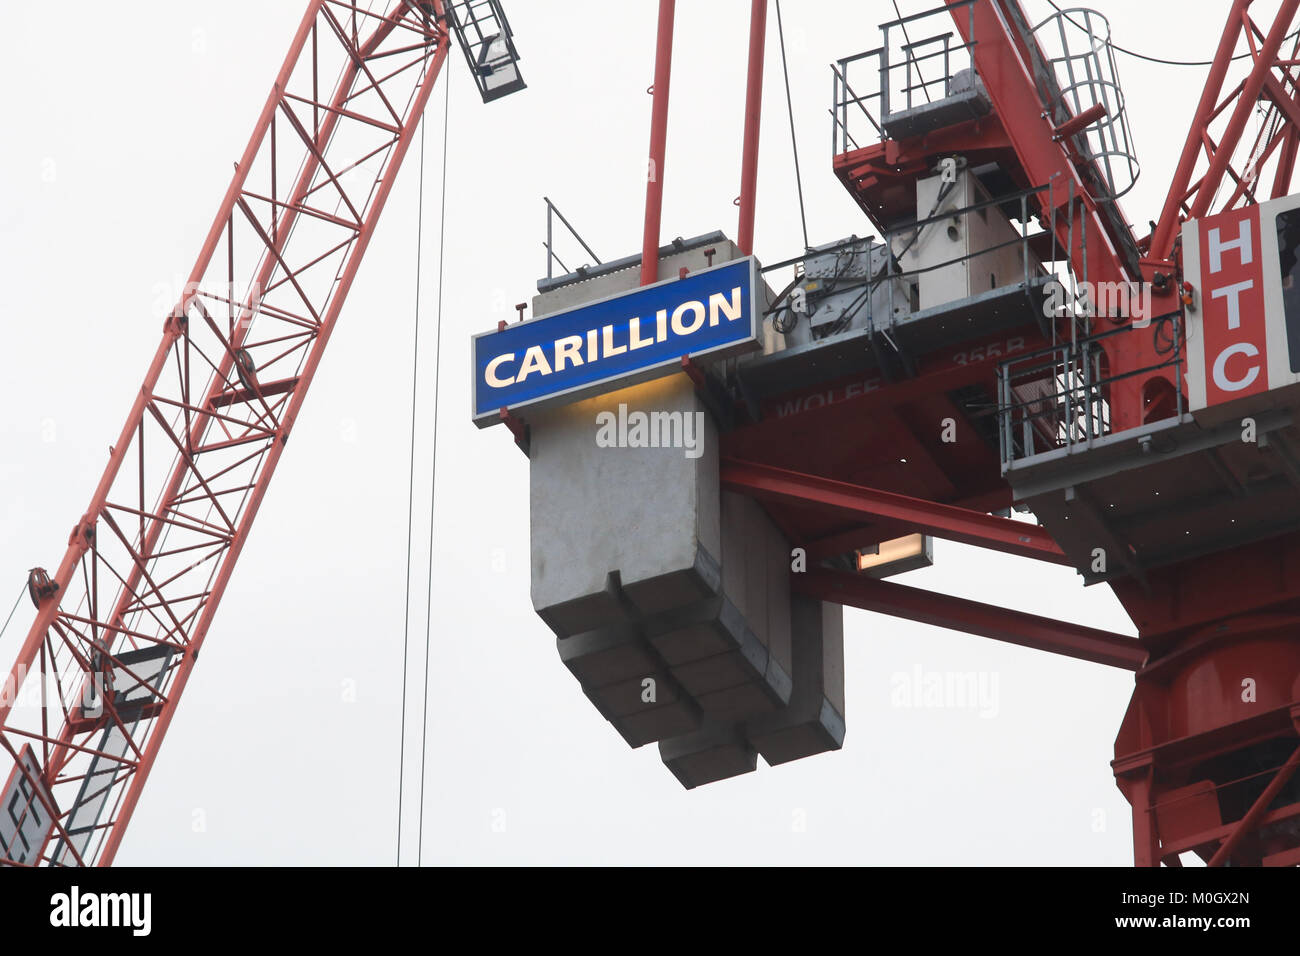 London, UK. 22nd Jan, 2018. The second largest construction company Carillon based in Wolverhampton which employed - Stock Image